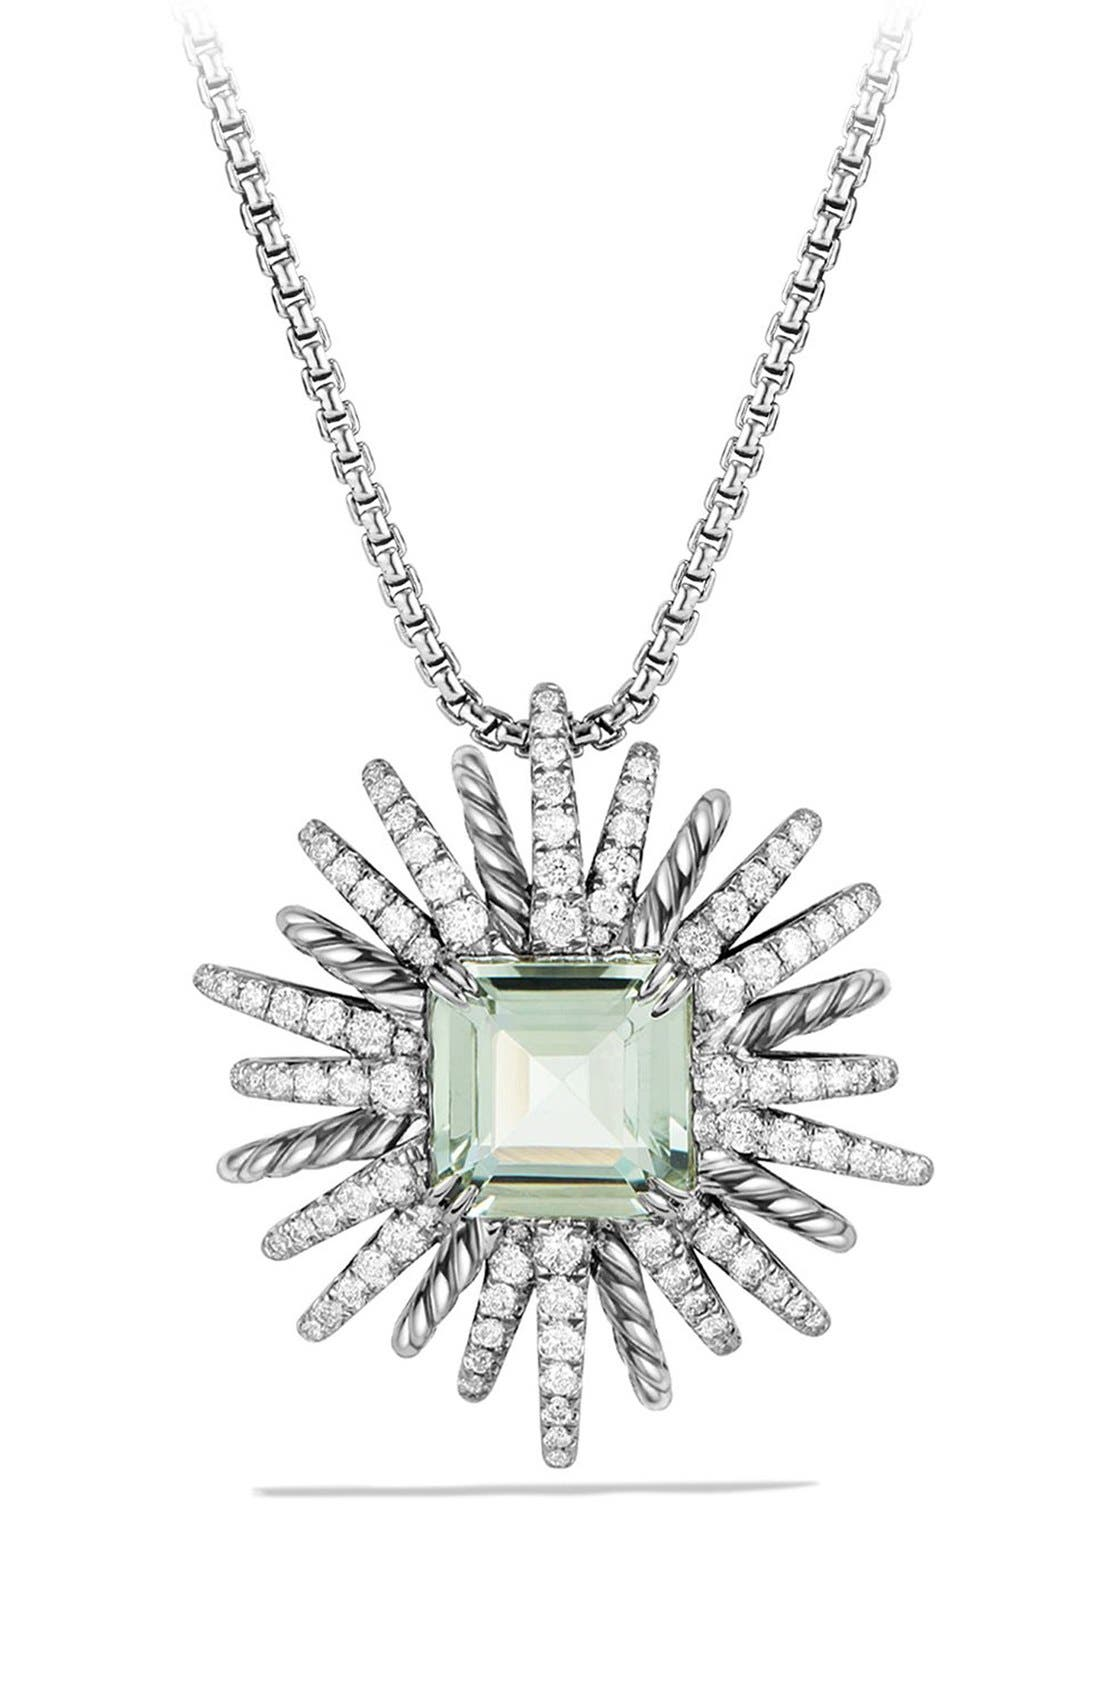 David Yurman 'Starburst' Necklace with Diamonds in Silver